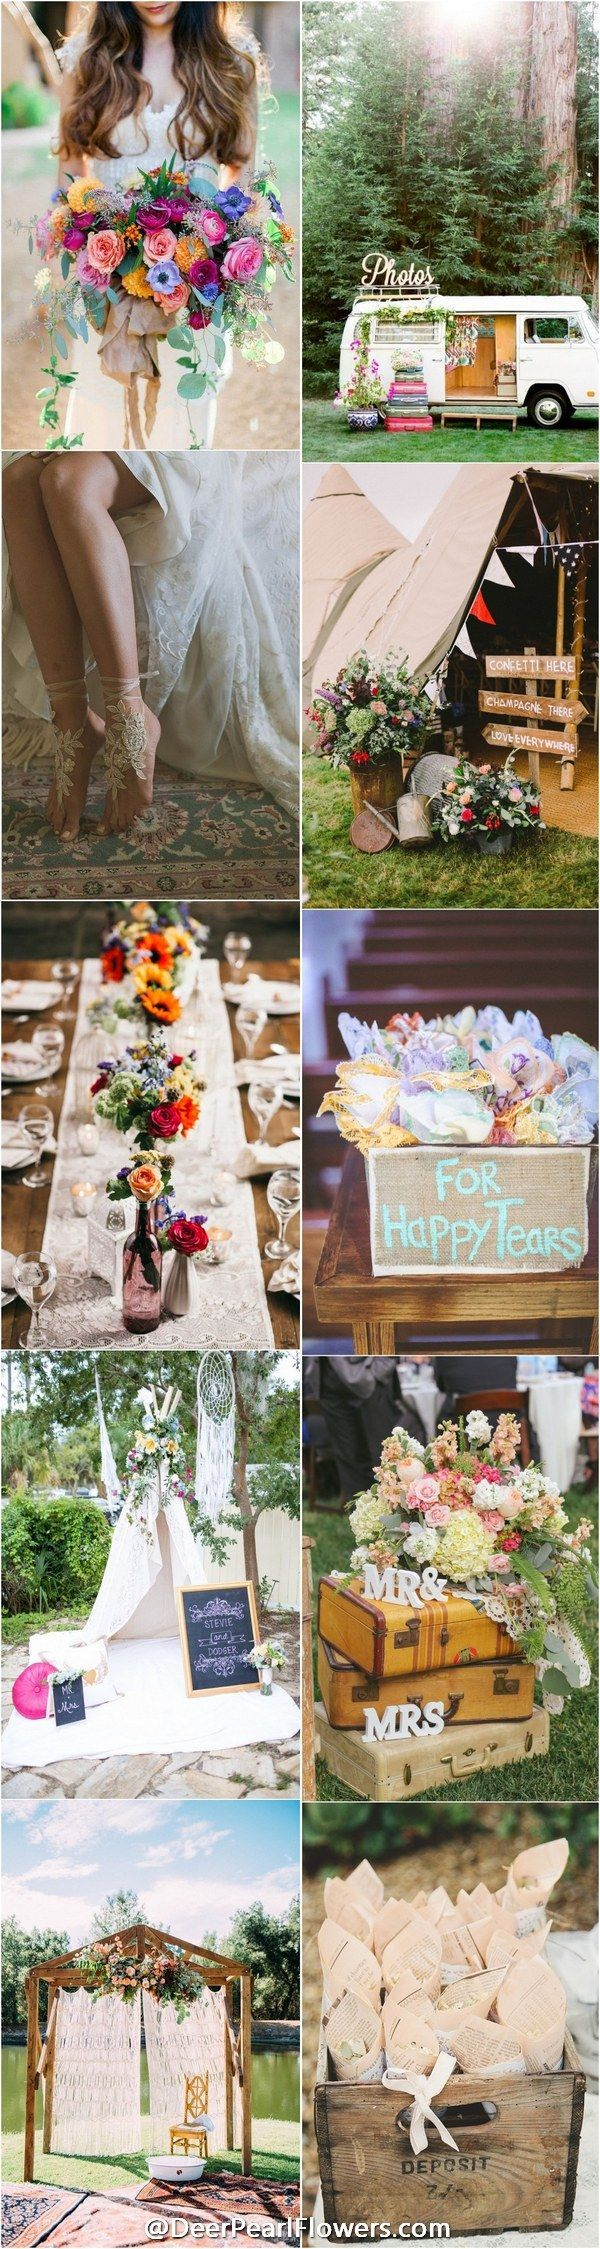 721 best vintage weddings images on pinterest wedding themes